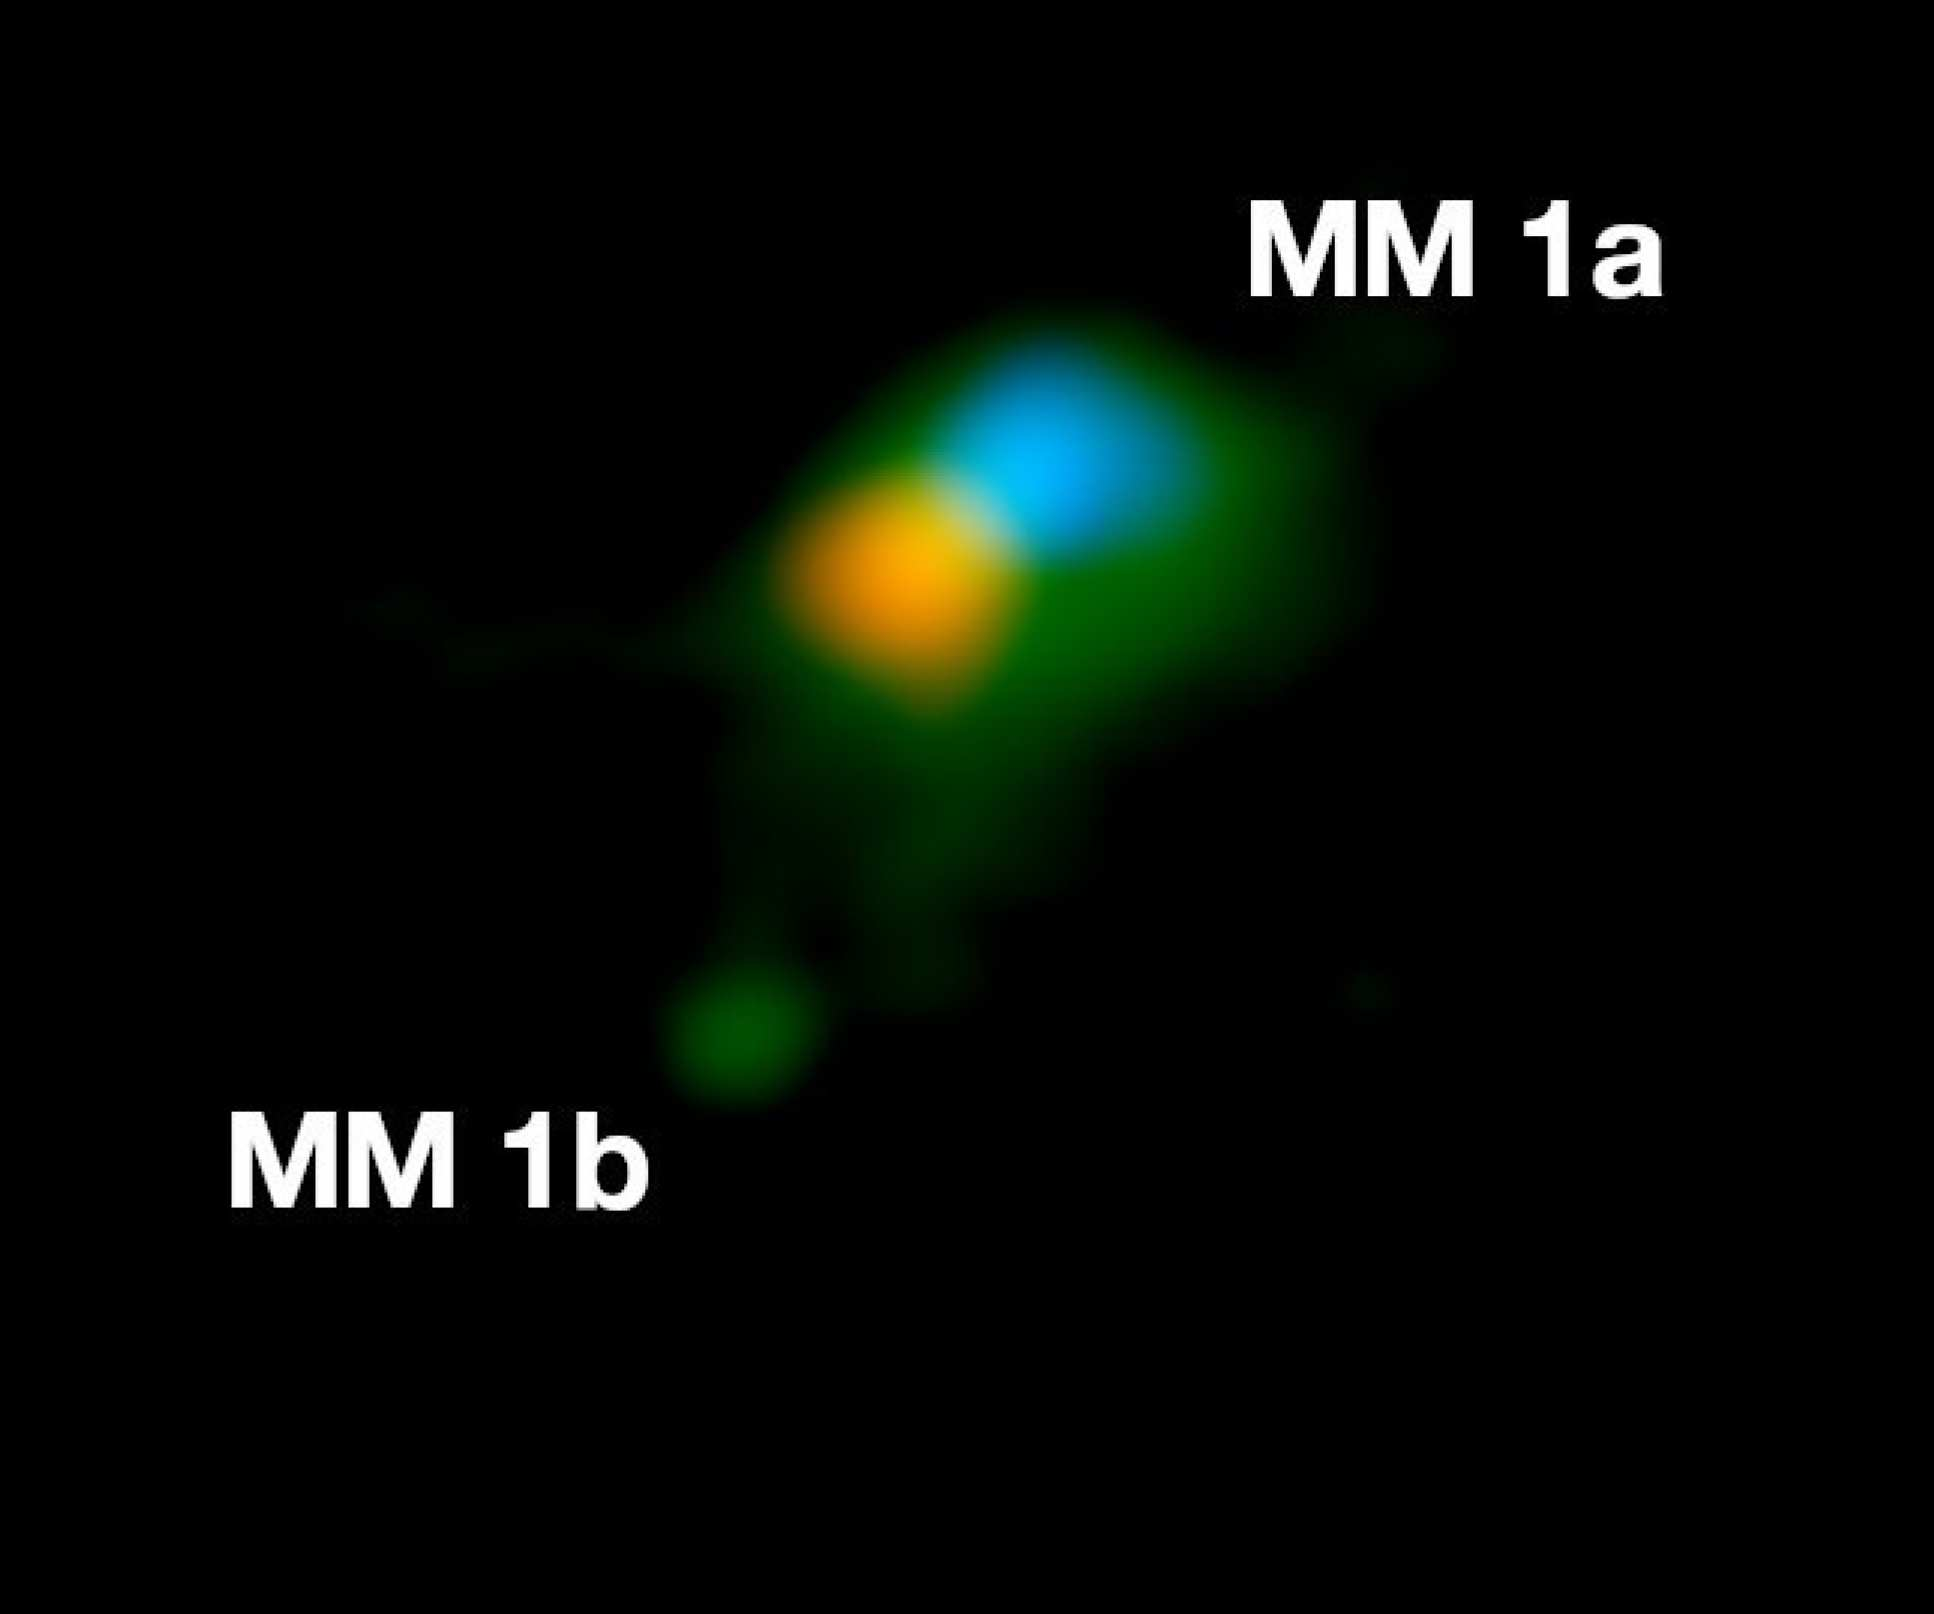 A blue and yellow blob labelled MM 1a and a smaller green blob labelled MM 1b